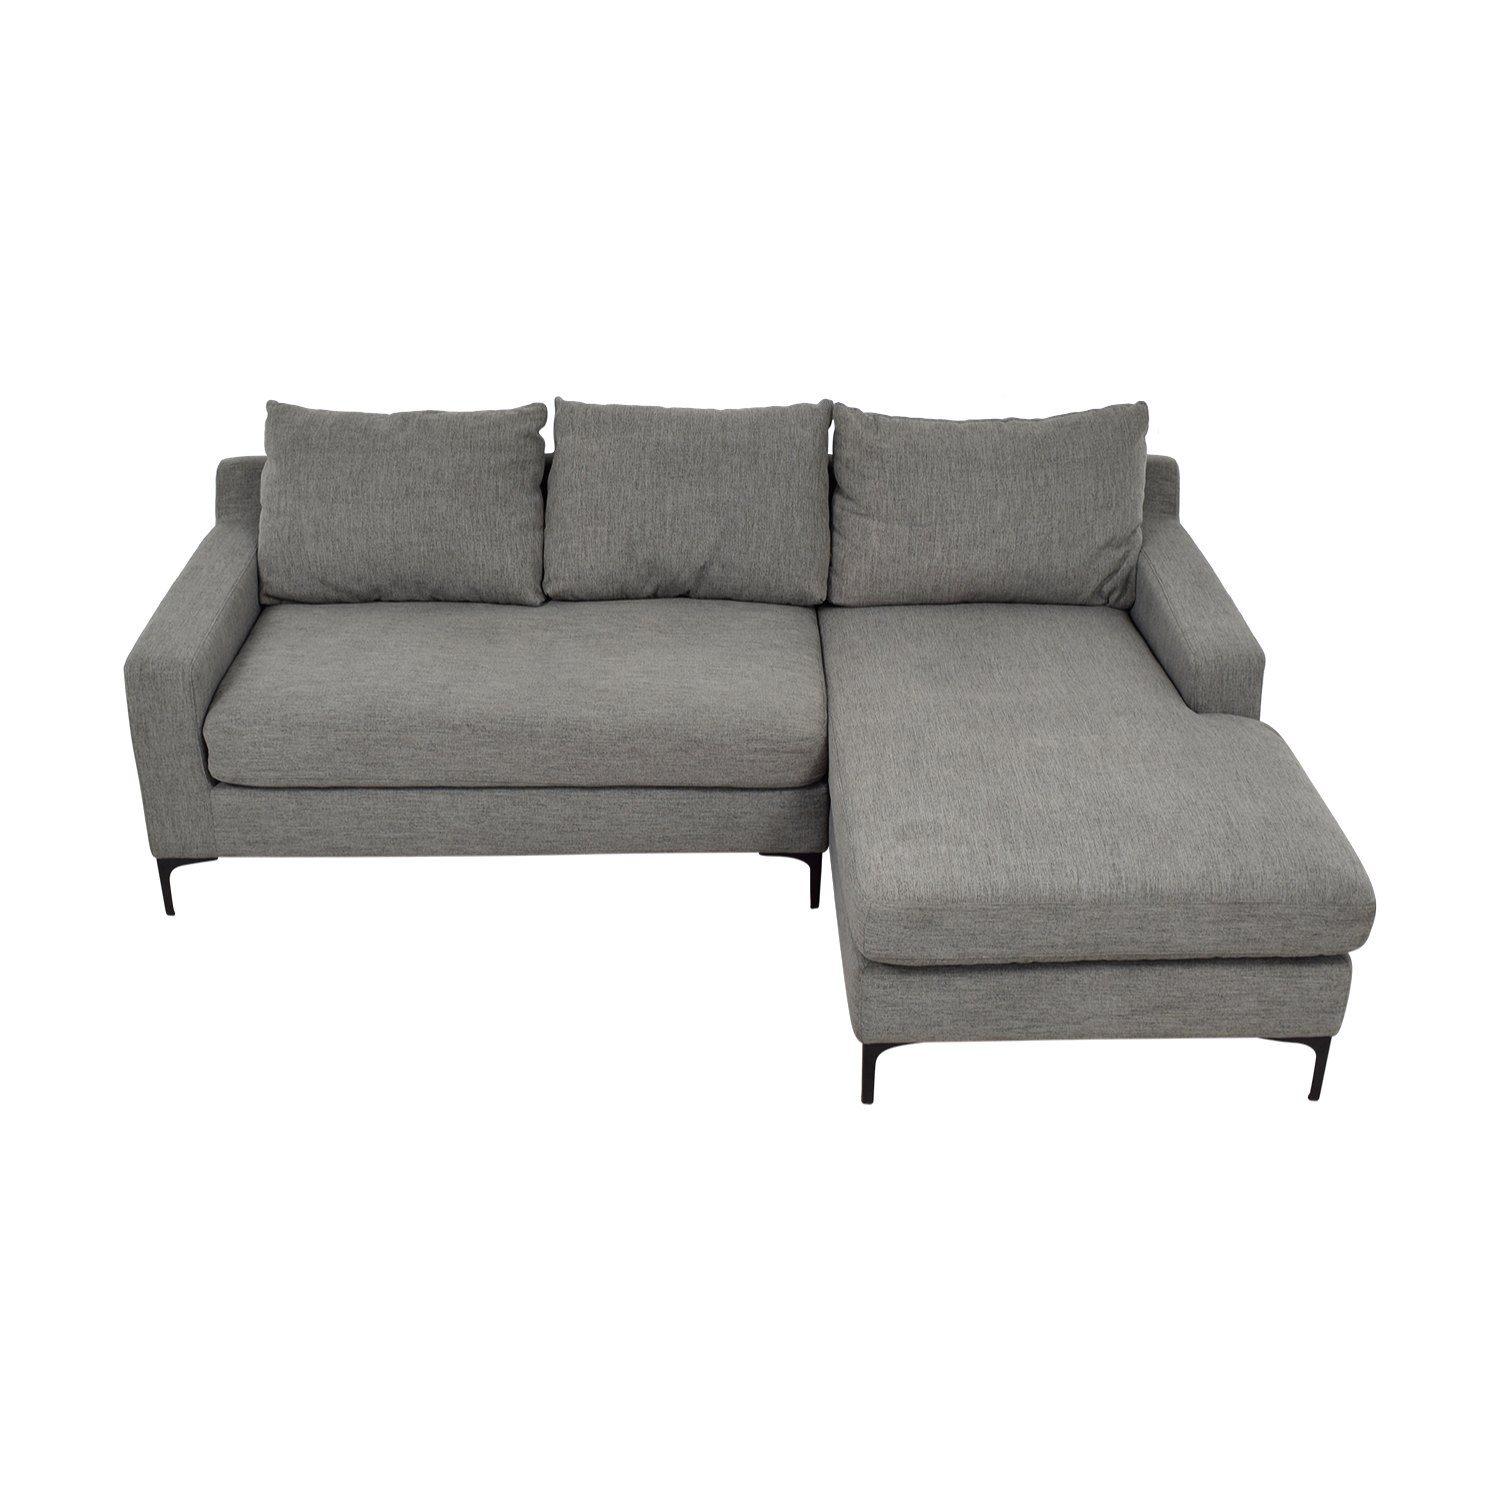 Sloan Right Chaise Sofa Sofas